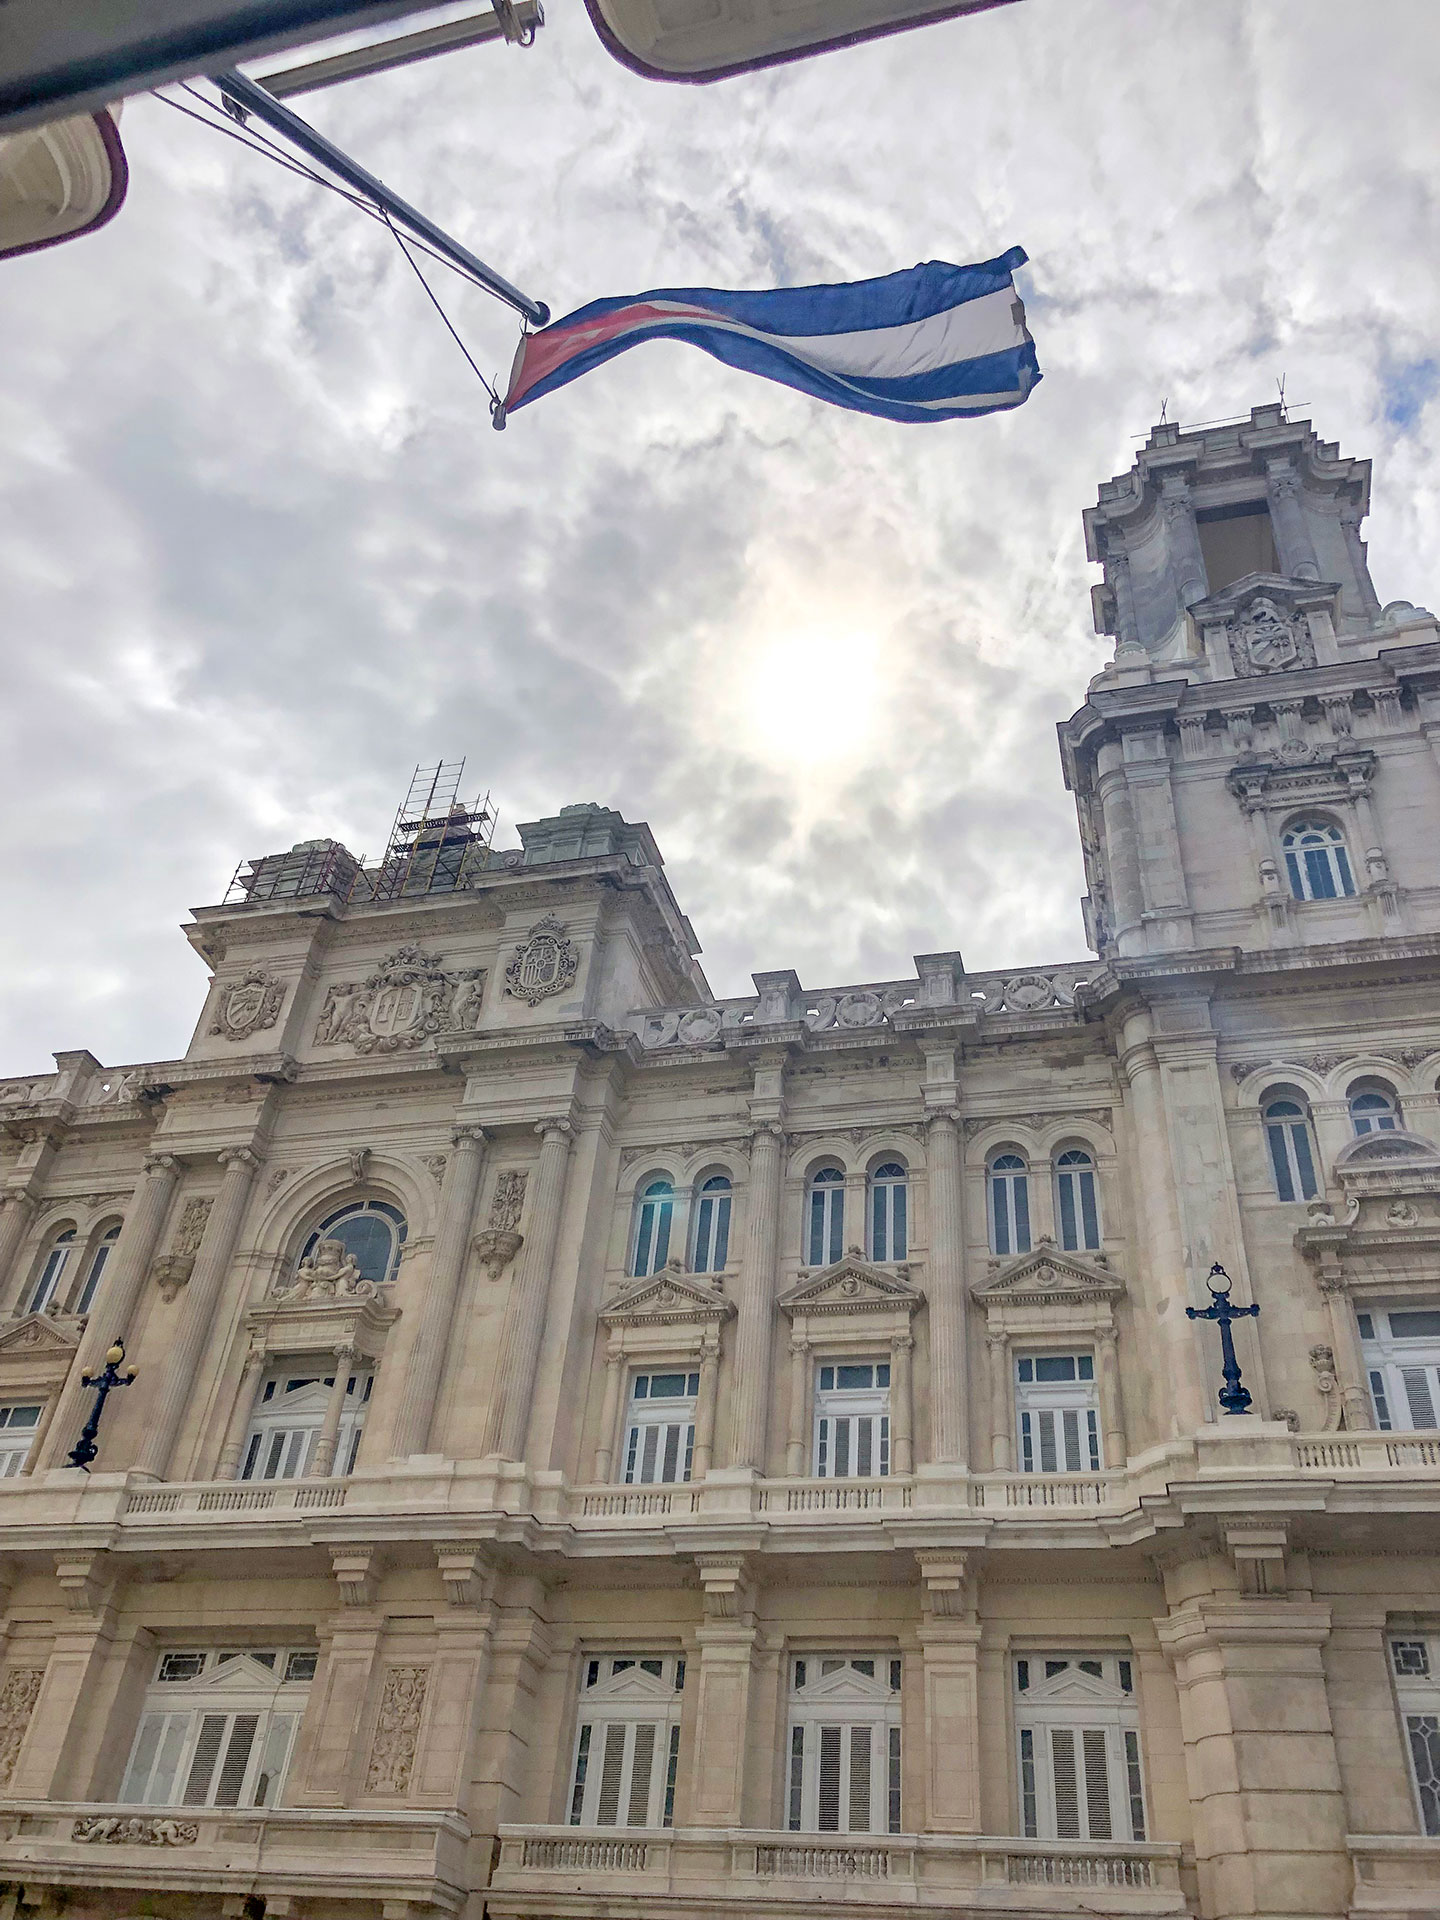 Picture of a classic building with the Cuban flag in Havana